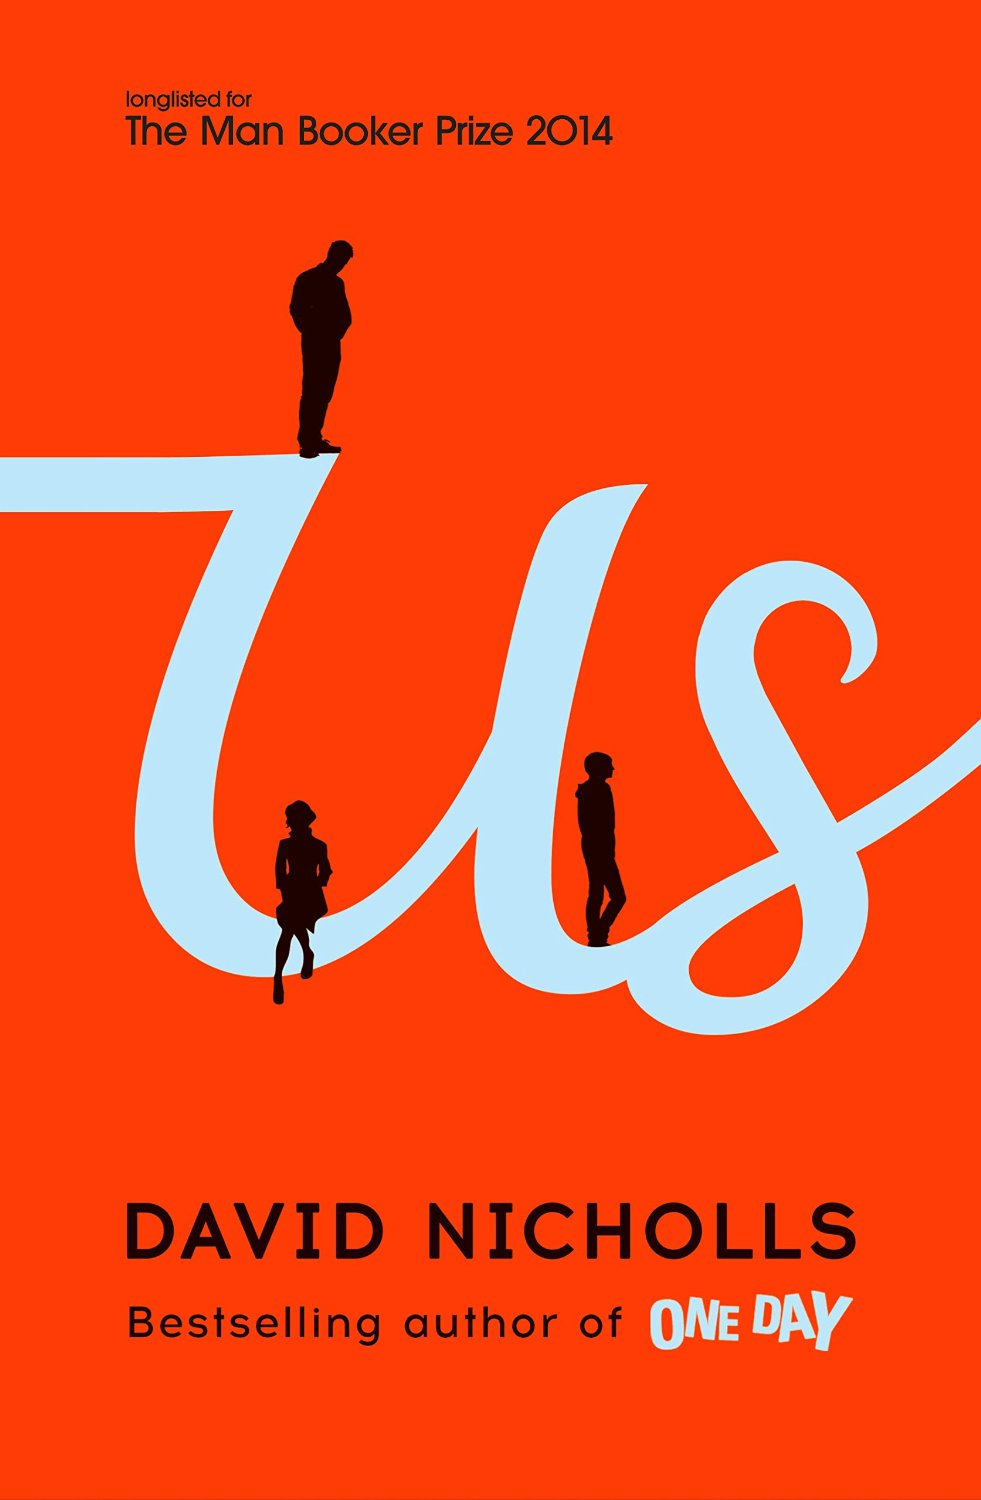 "1) Us, David Nicholls. I have to admit, I started reading this book out of sheer first world necessity. I was on holiday and my kindle had run out of battery and this book, in my mind, was the best choice on book shelf at the villa I was staying. I've read many of Nicholls's books before and had really only enjoyed the famous ""One Day"". As such, when this book made me turn down drinks and food just so I could keep reading, I was more than pleasantly surprised. It's funny, endearing and a bit of a tear jerker in parts as it chronicles a man's relationship with his wife and son. It is a wonderfully good yet easy read that should make it into any beach bag if it hasn't already."